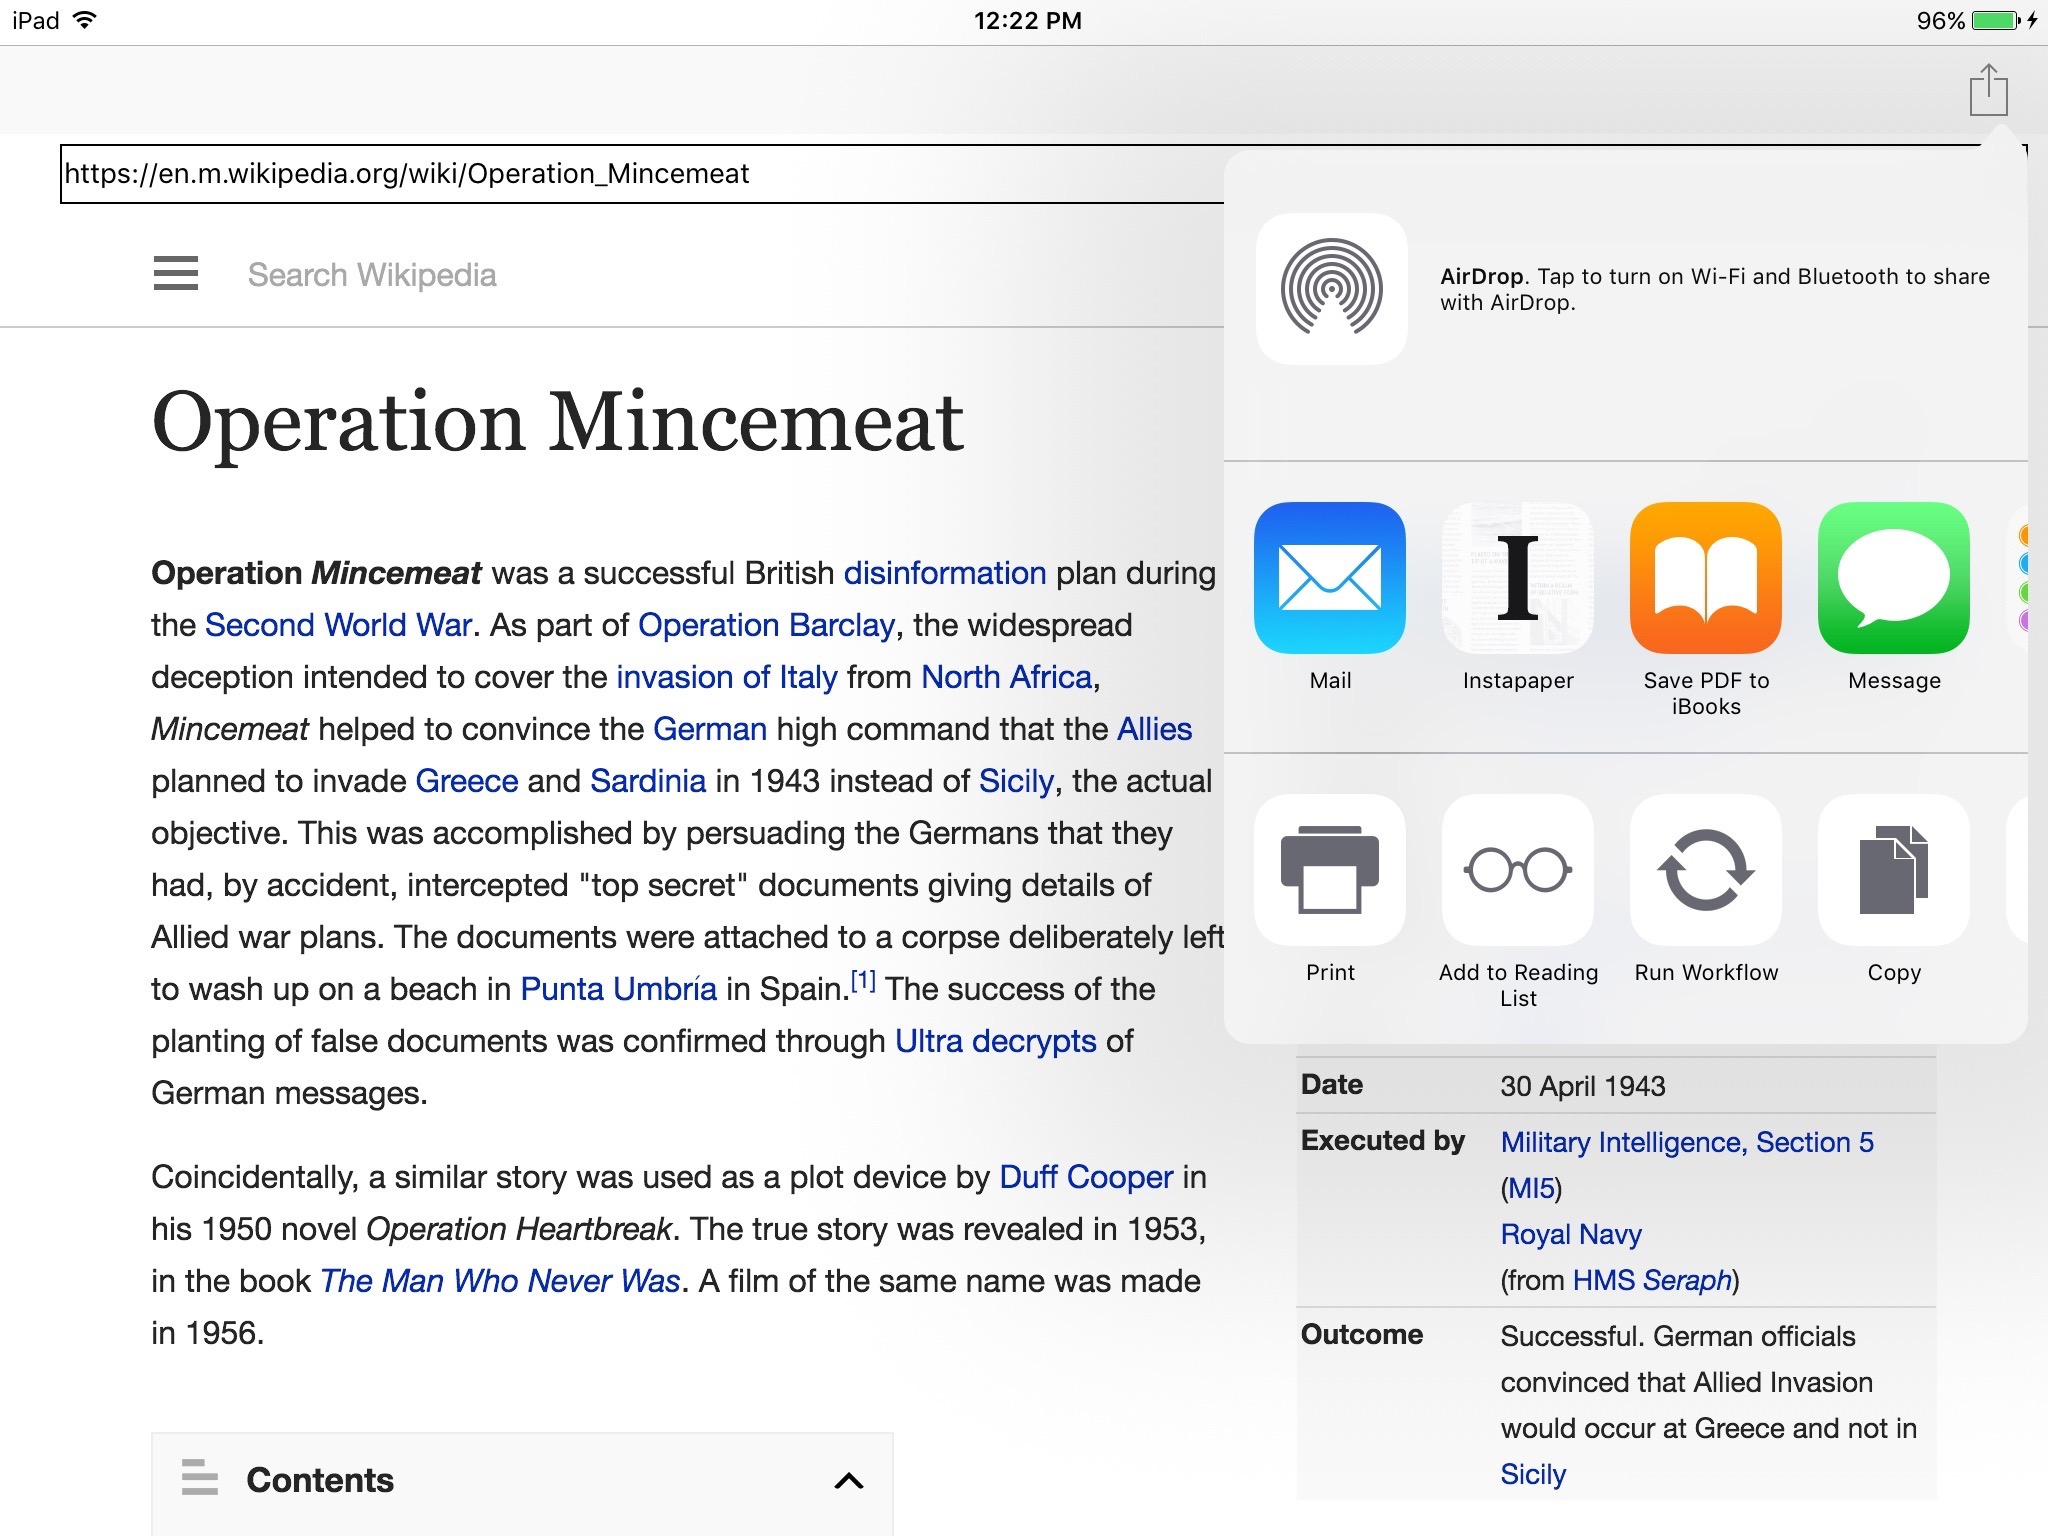 Adding Save PDF to iBooks Support to Your Application